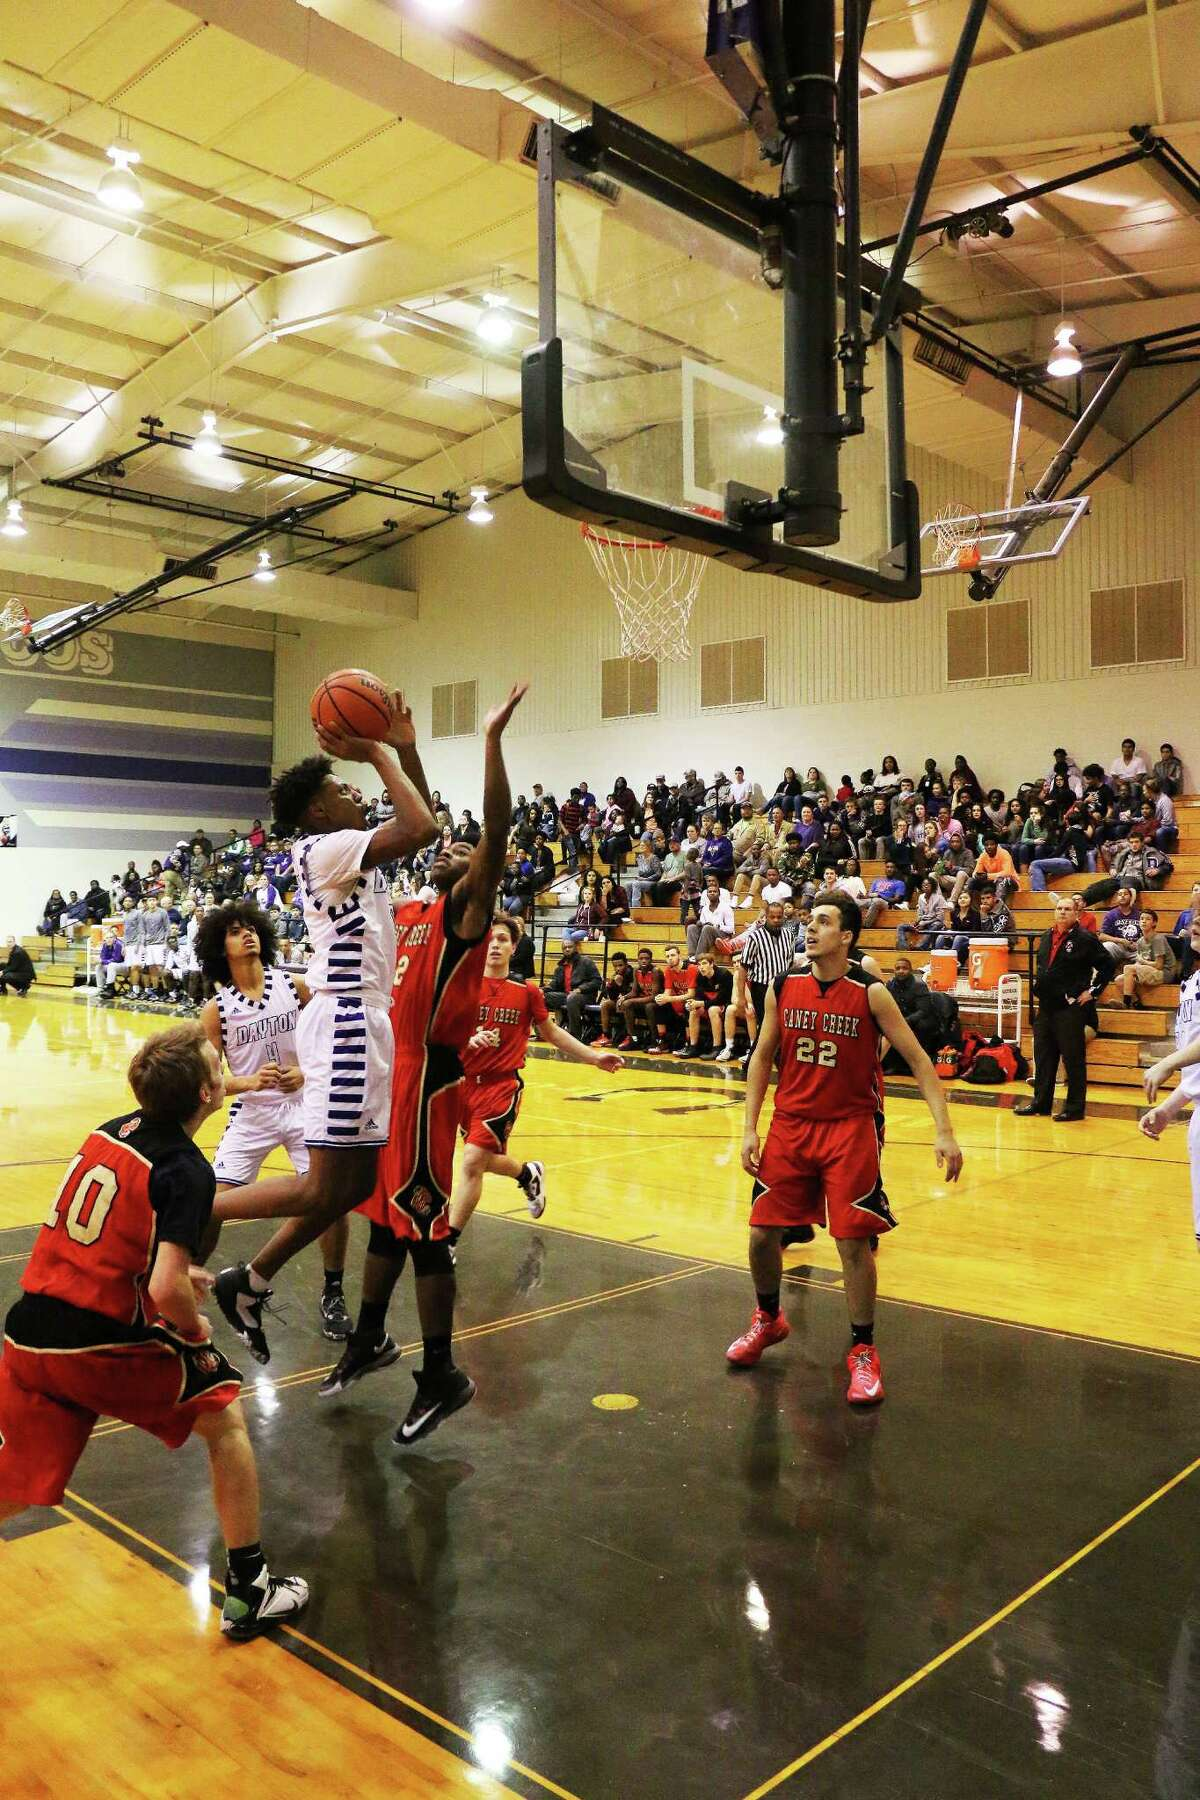 DaytonÂ?'s Julius grabs his own rebound and shoots the ball over several Caney Creek defenders in their contest Friday night.